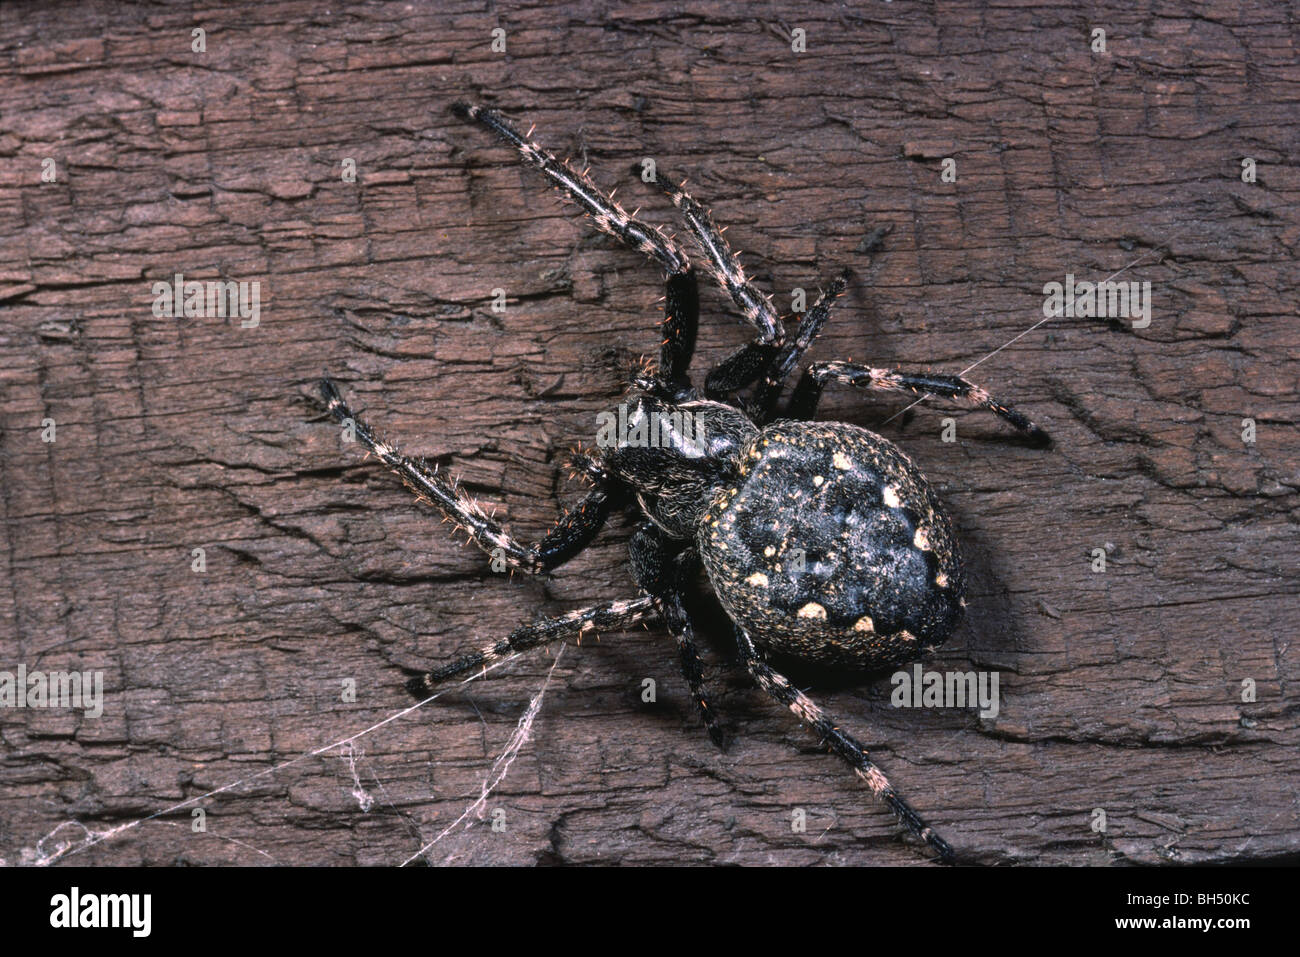 Close-up of a spider (Nuctanea umbratica) resting on a garden fence. - Stock Image